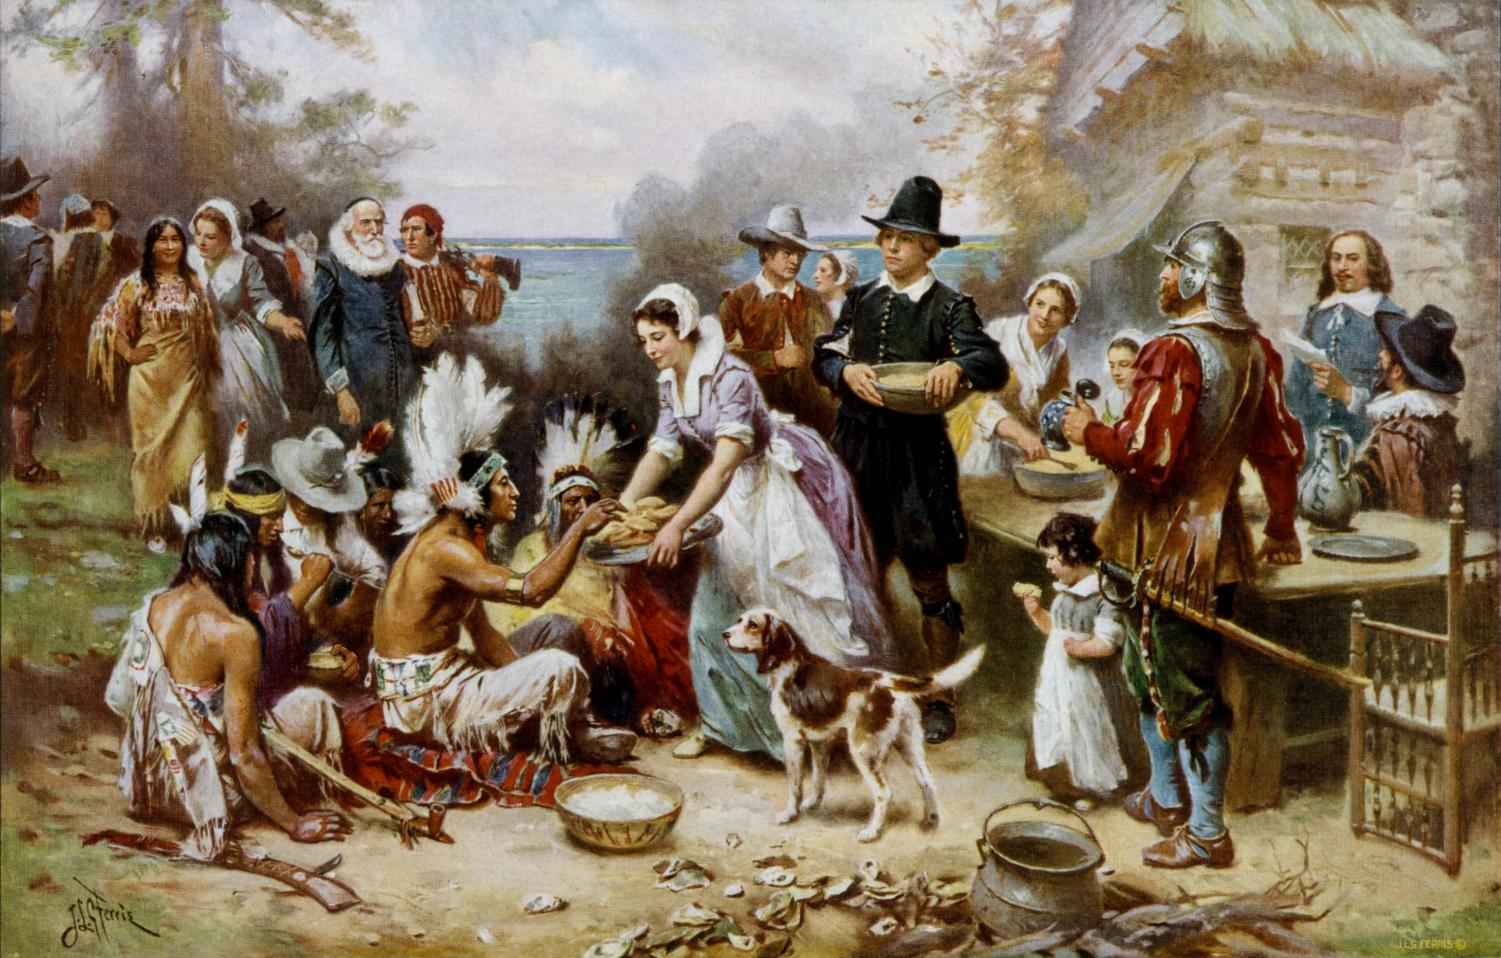 Depiction of the first Thanksgiving including Pilgrims and Native Americans sharing a feast.